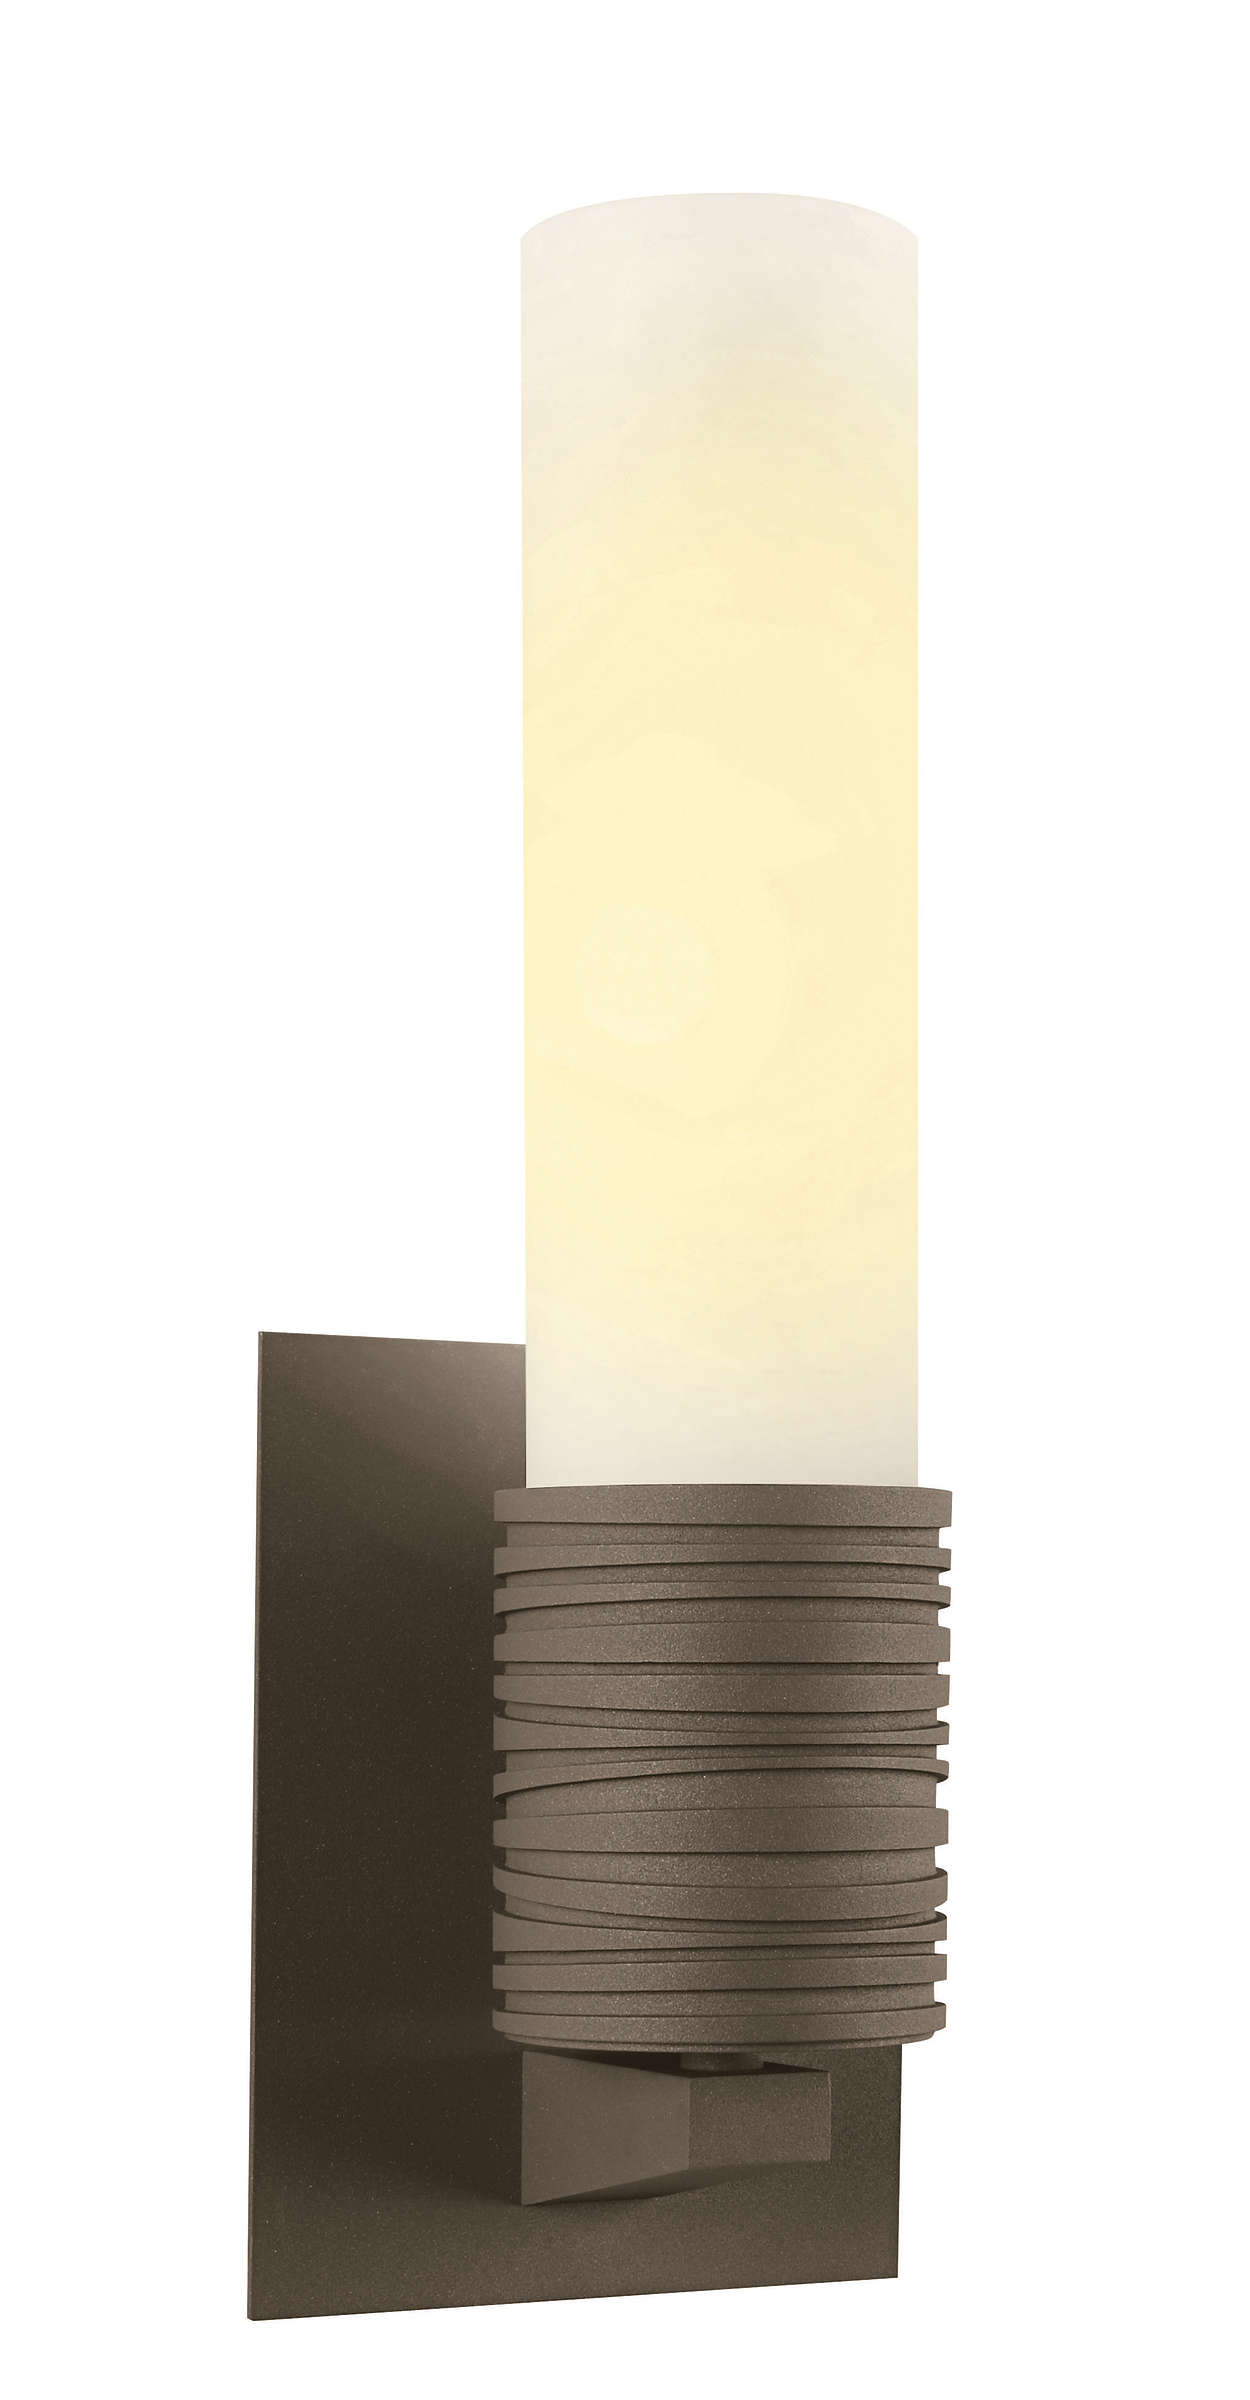 Phoenix 1-light CFL wall sconce, Bronze finish